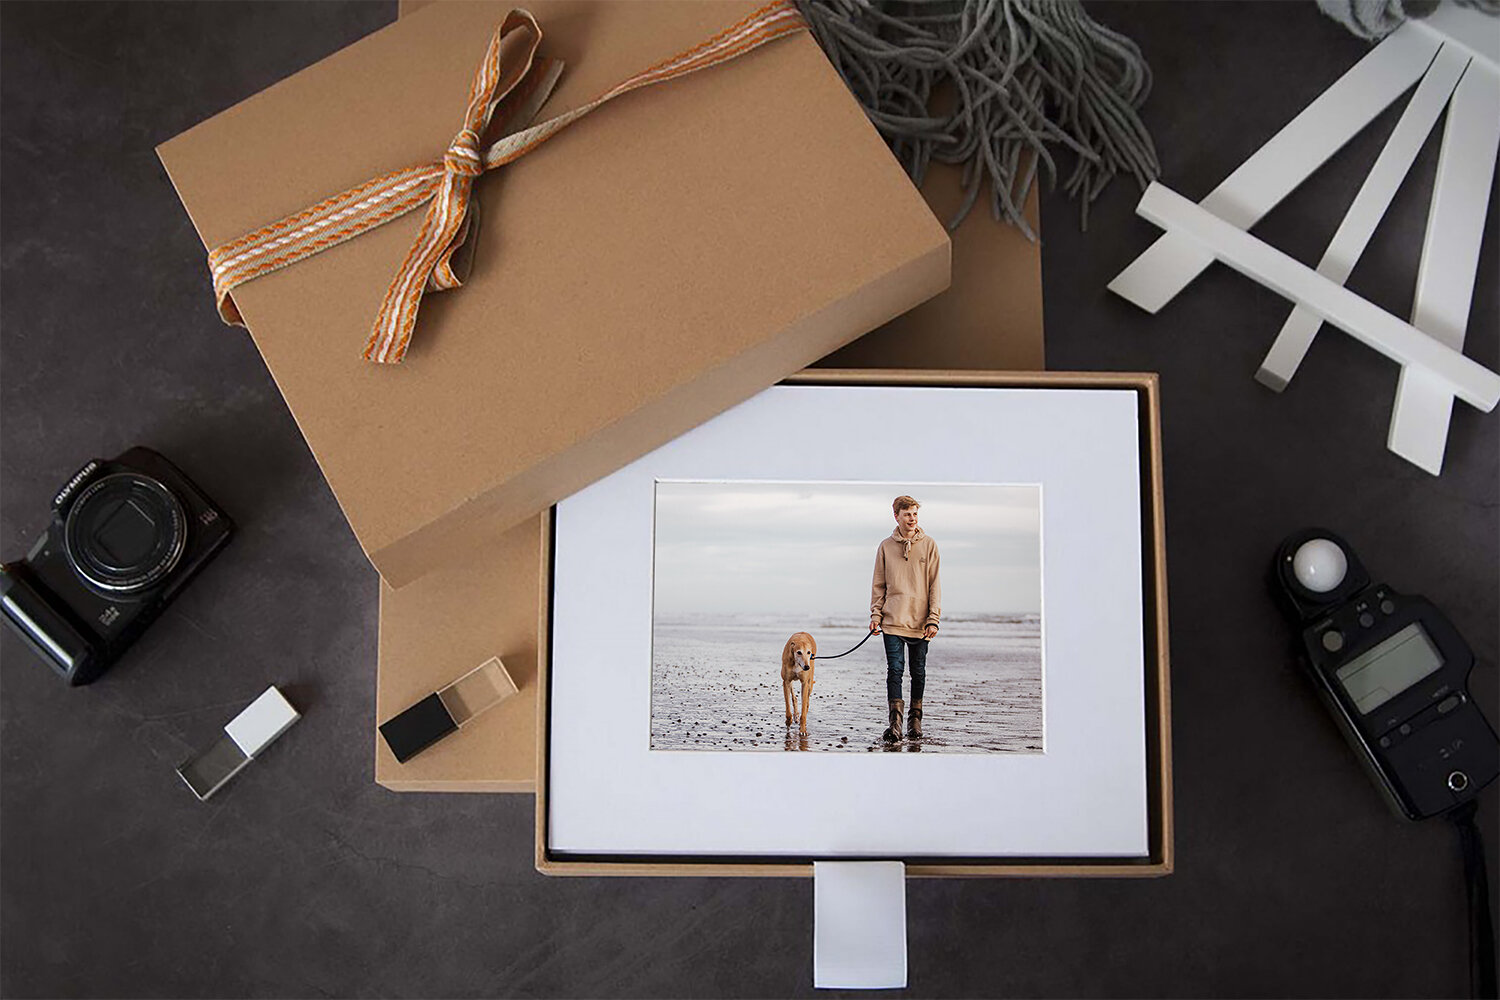 Portfolio box - Individual fine art prints size 5x7.5 mounted and matted to 8x10. Overall size is ready for an 8x10 frame. Our Portfolio Box has a white suede lining on the interior base of the box with a matching white 'lift out' ribbon.Available in our Fine Art Print + Digital Collections of 10 images.From $780